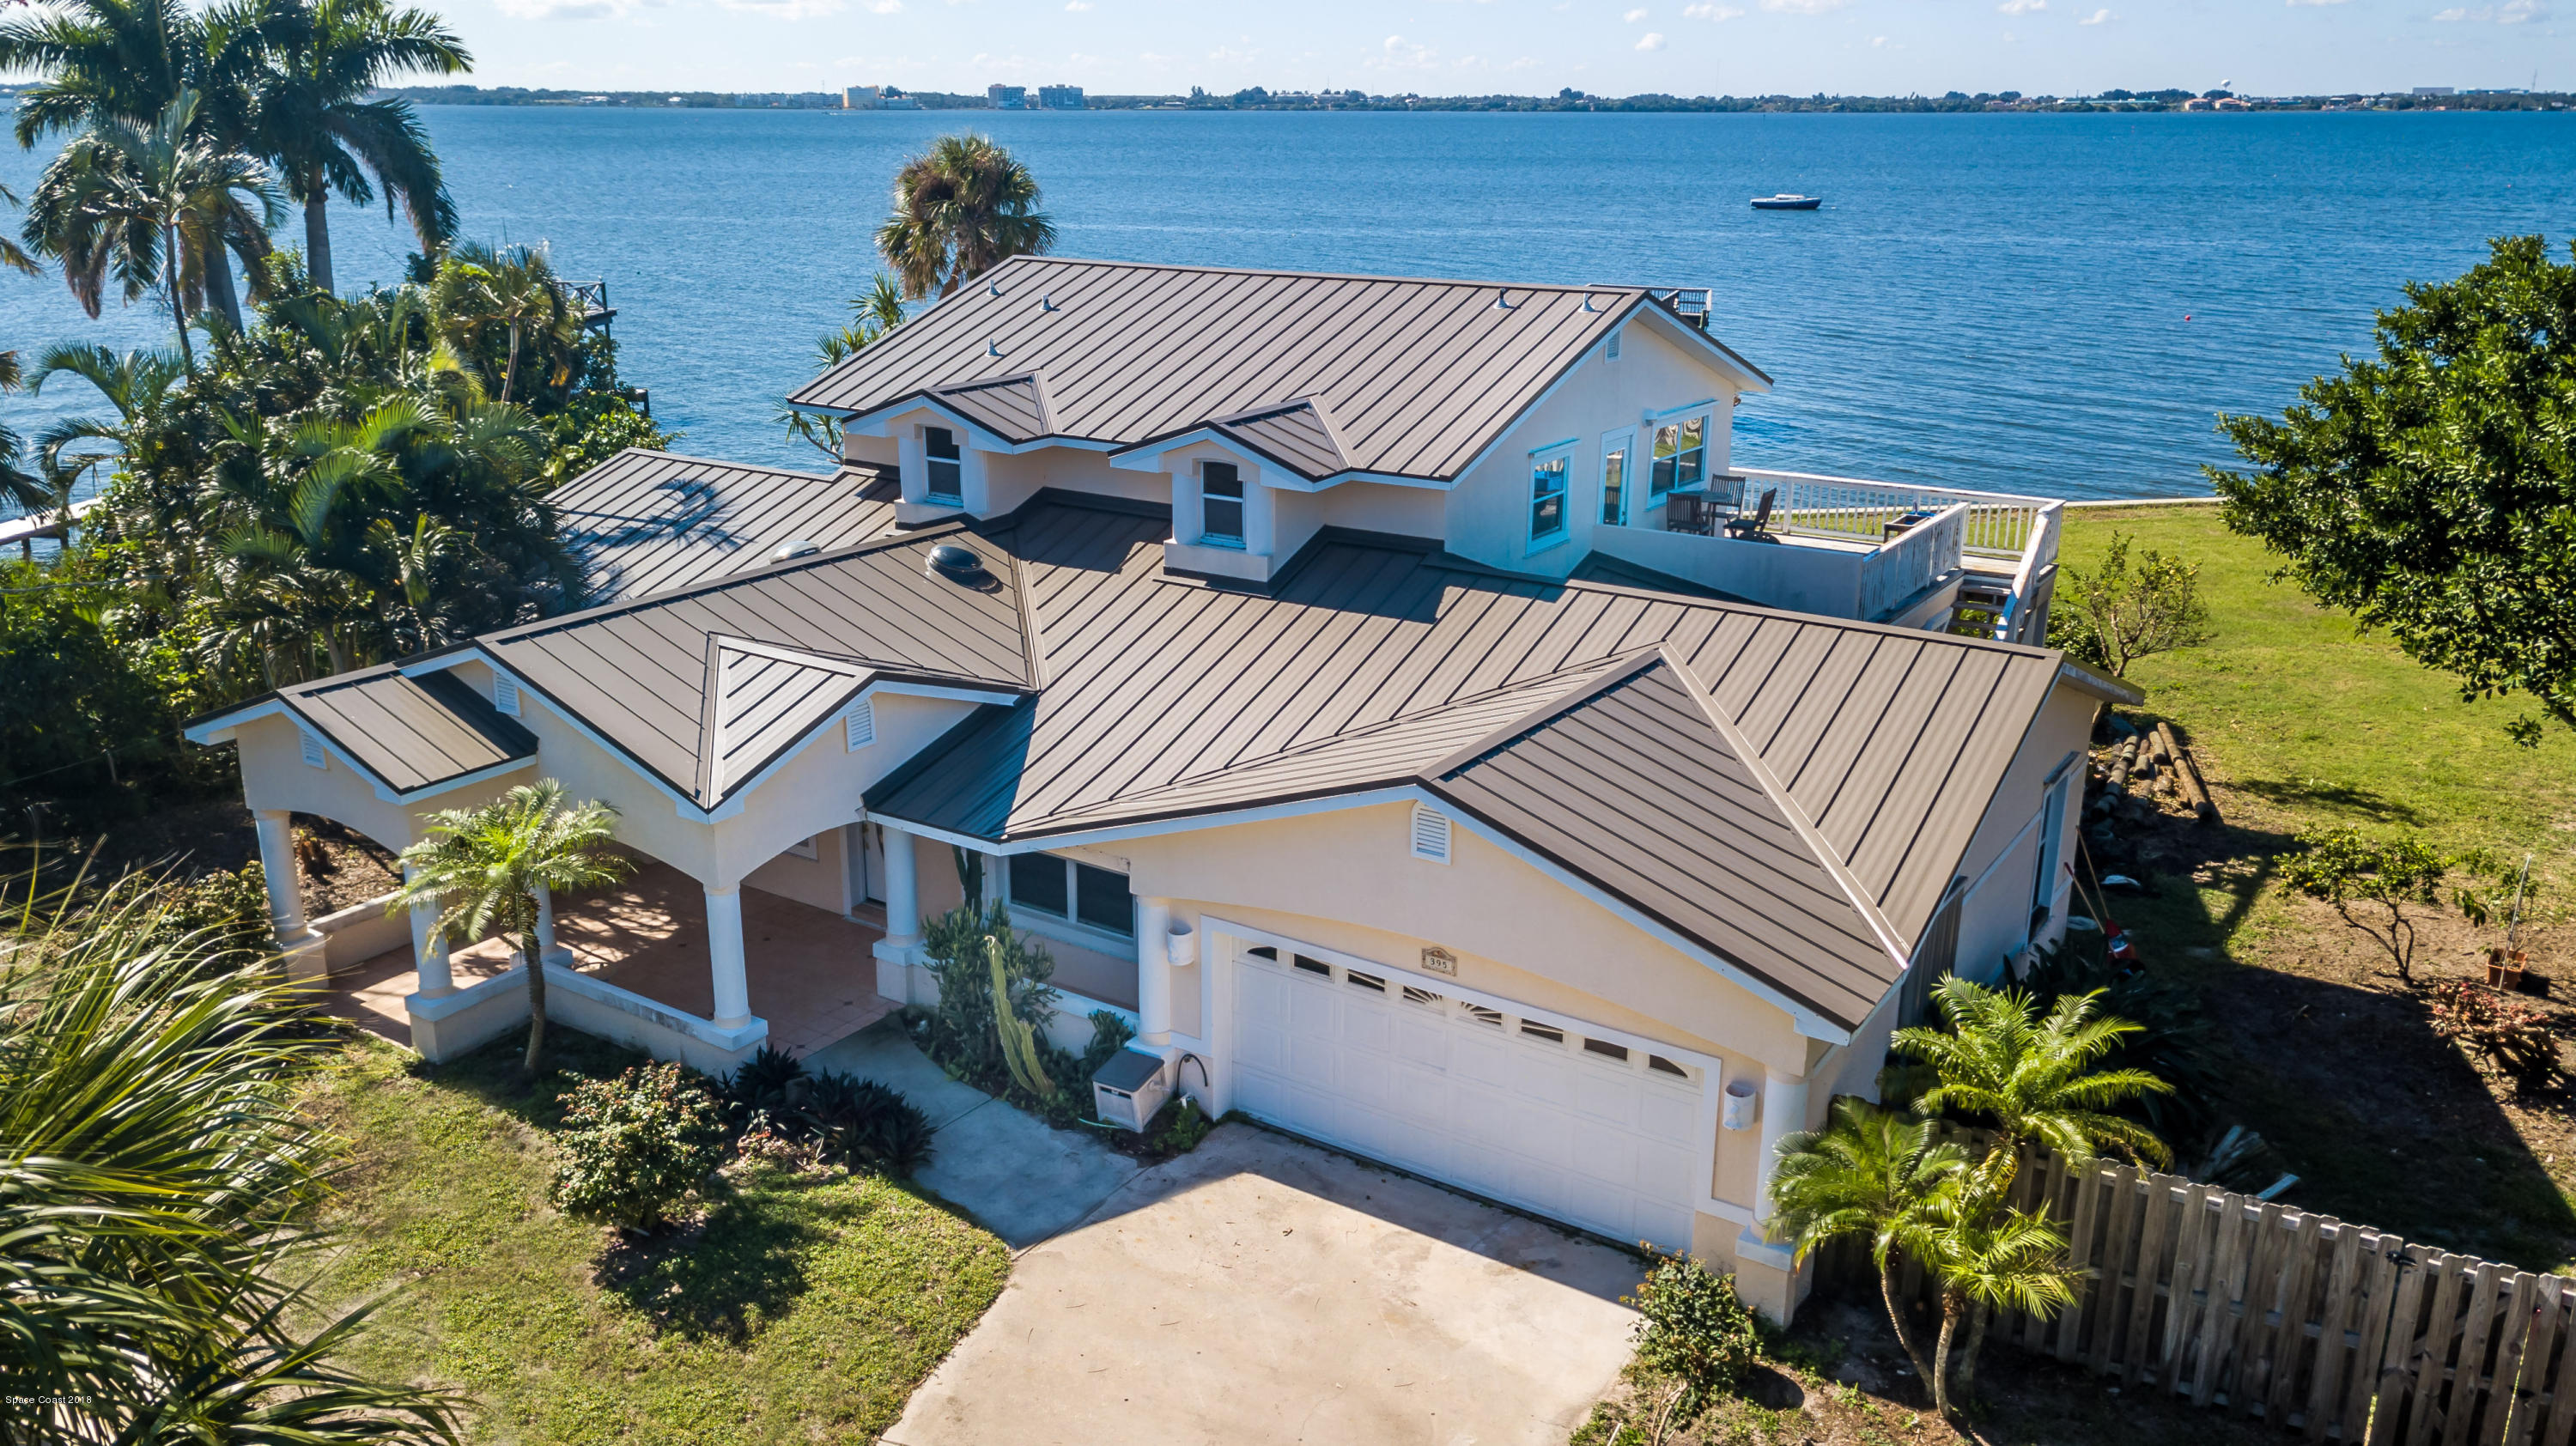 Single Family Home for Sale at 395 Richards 395 Richards Melbourne Beach, Florida 32951 United States